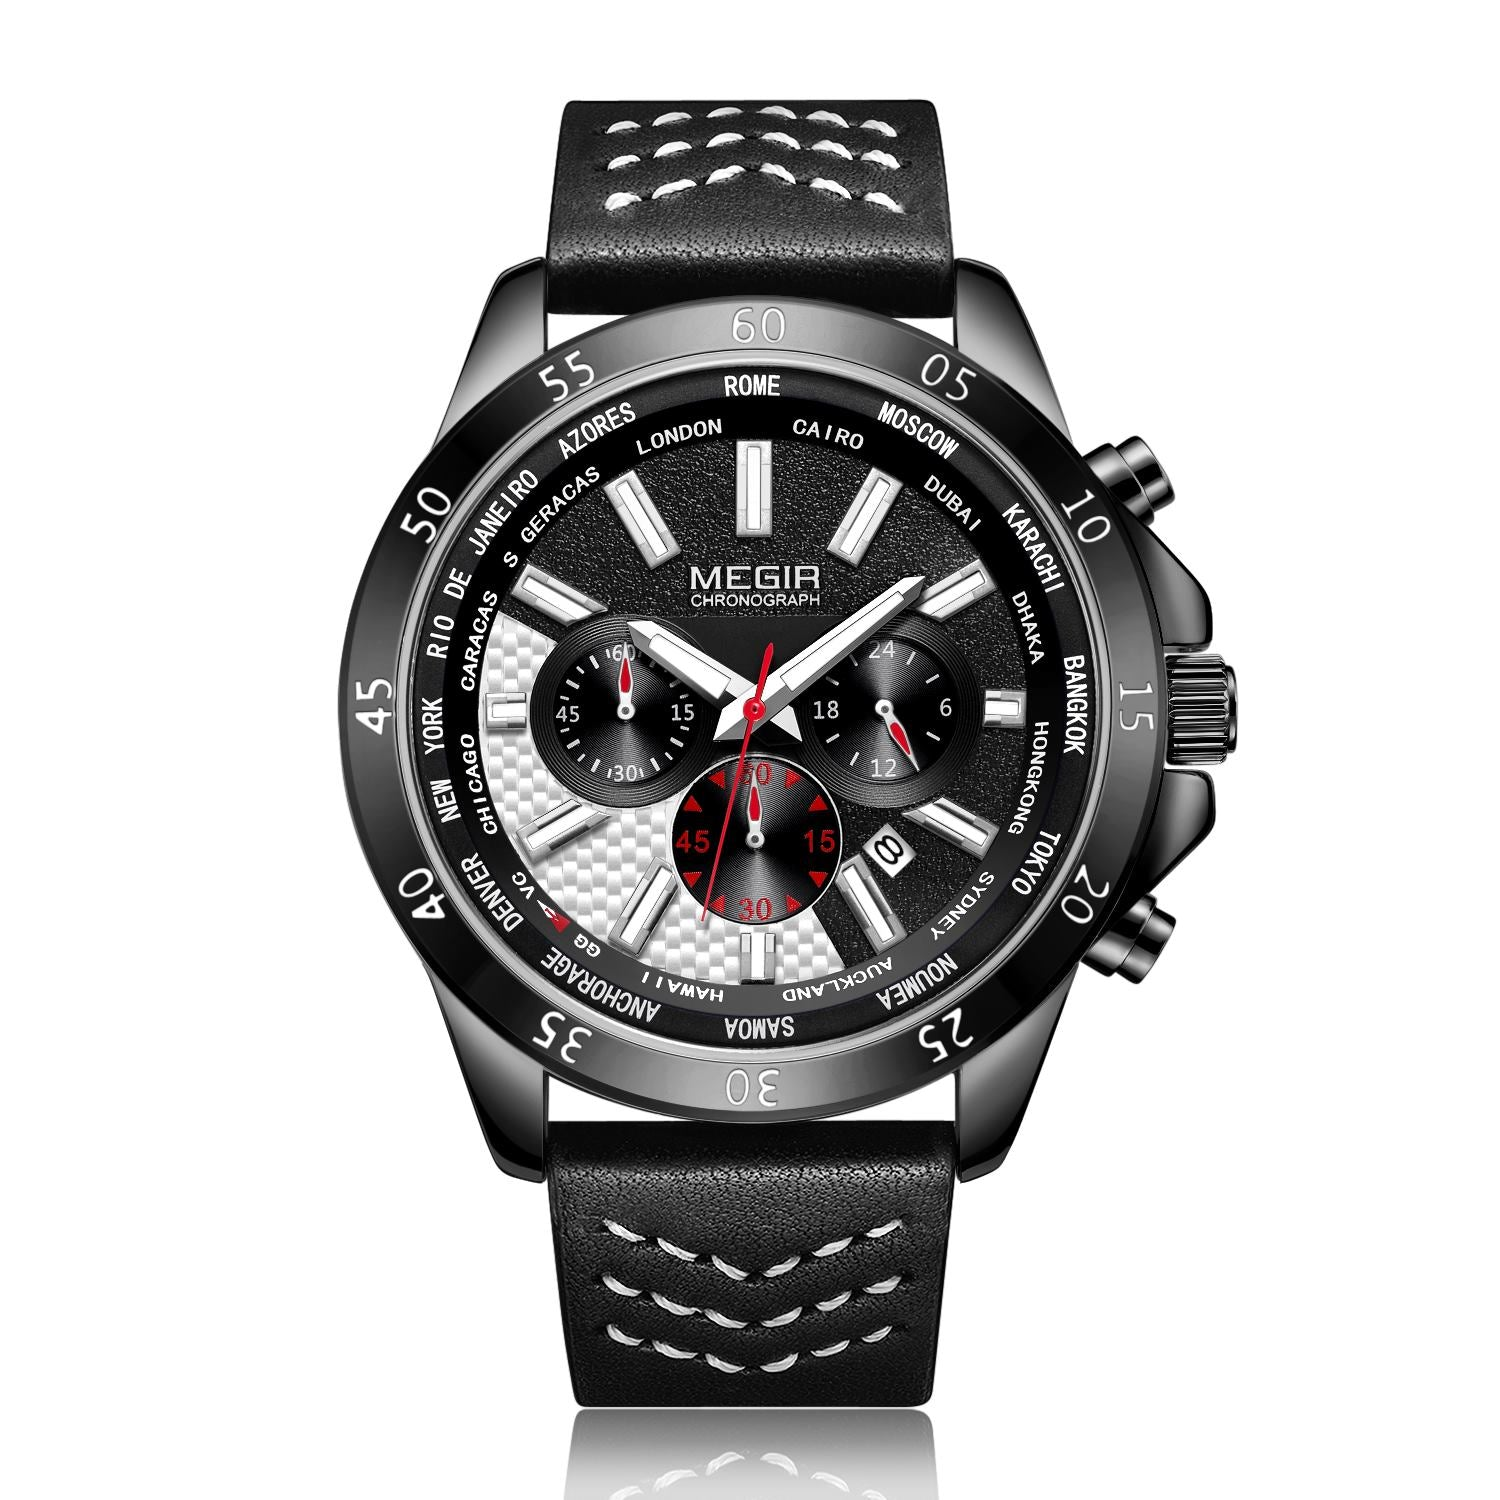 MEGIR watch for men, mens quartz sports watches 2103 - MEGIR